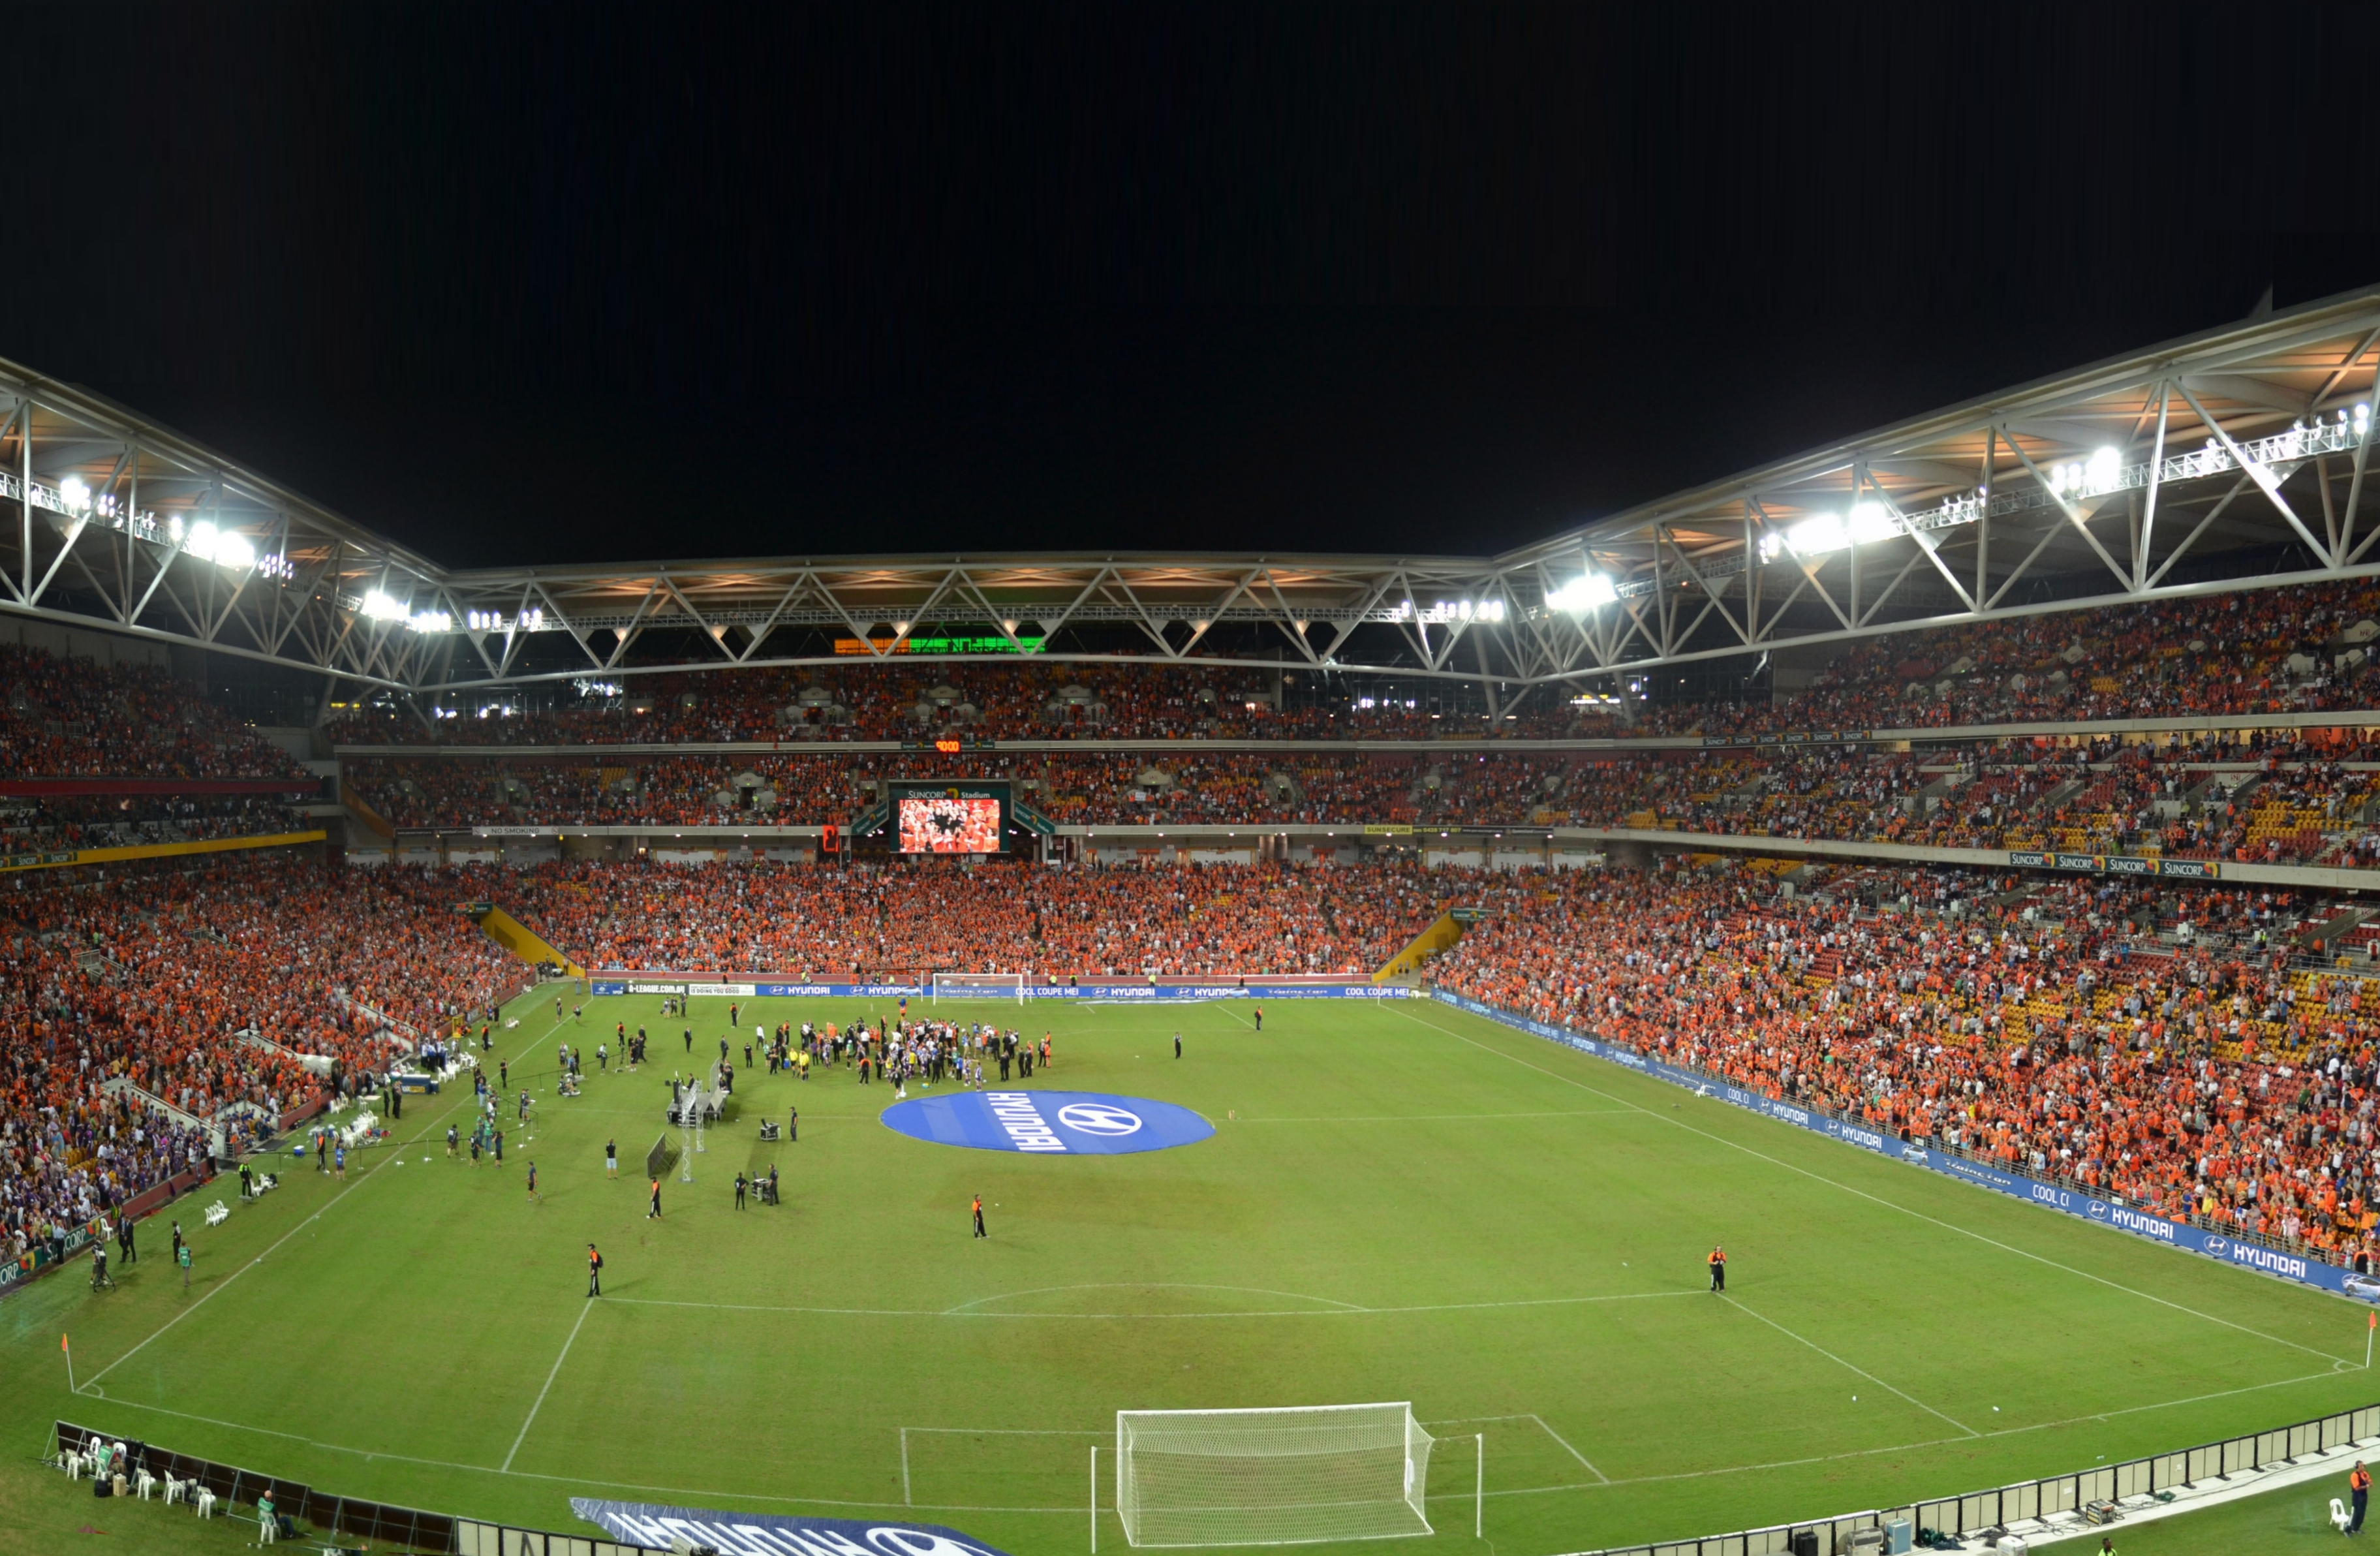 File Suncorp Stadium 22 April 2012 Cropped Jpg Wikimedia Commons